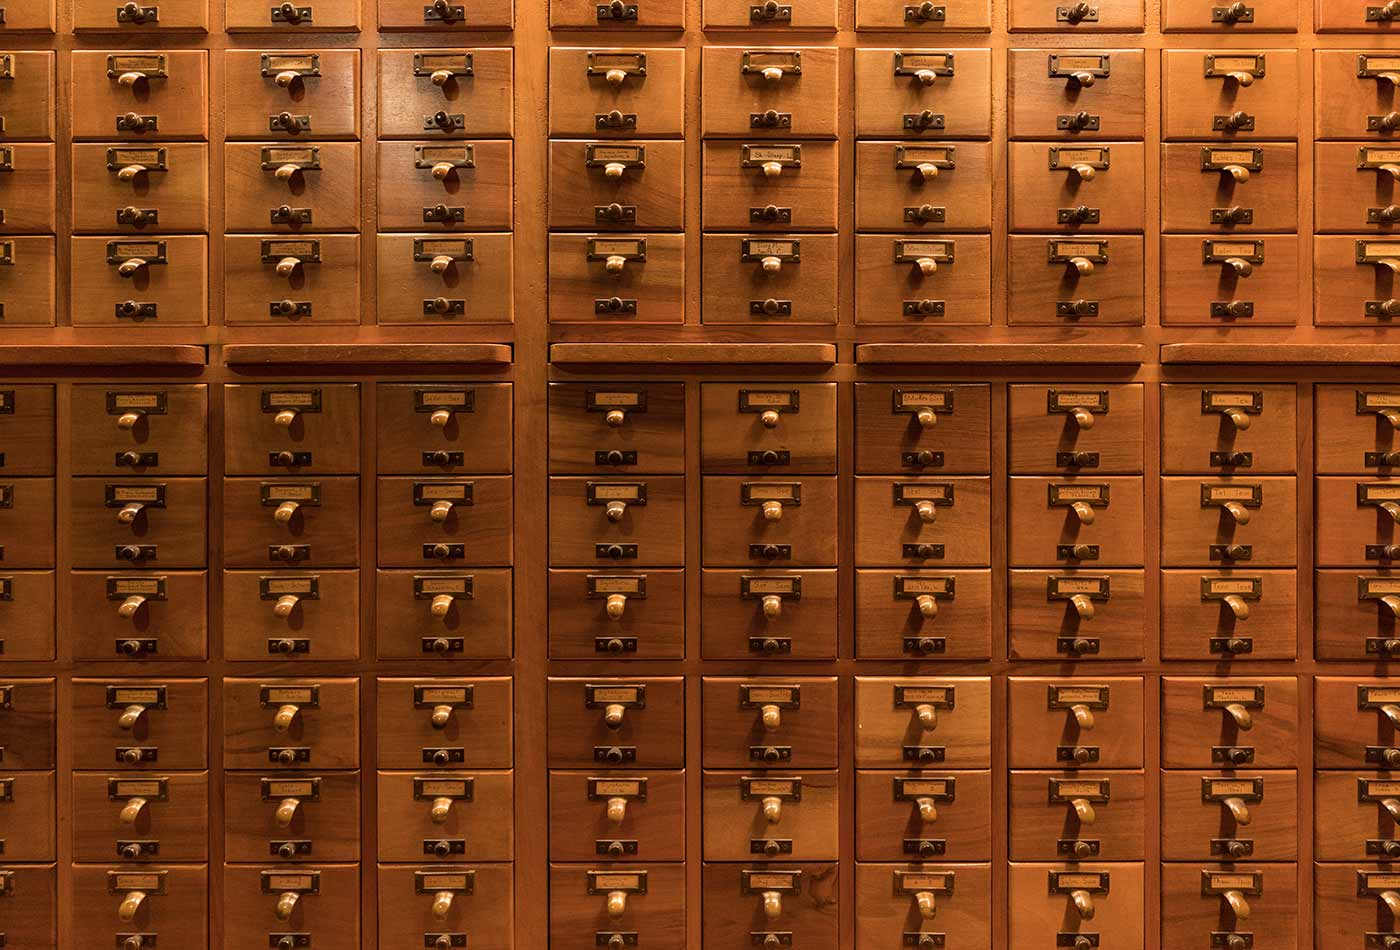 Reference library card catalog.